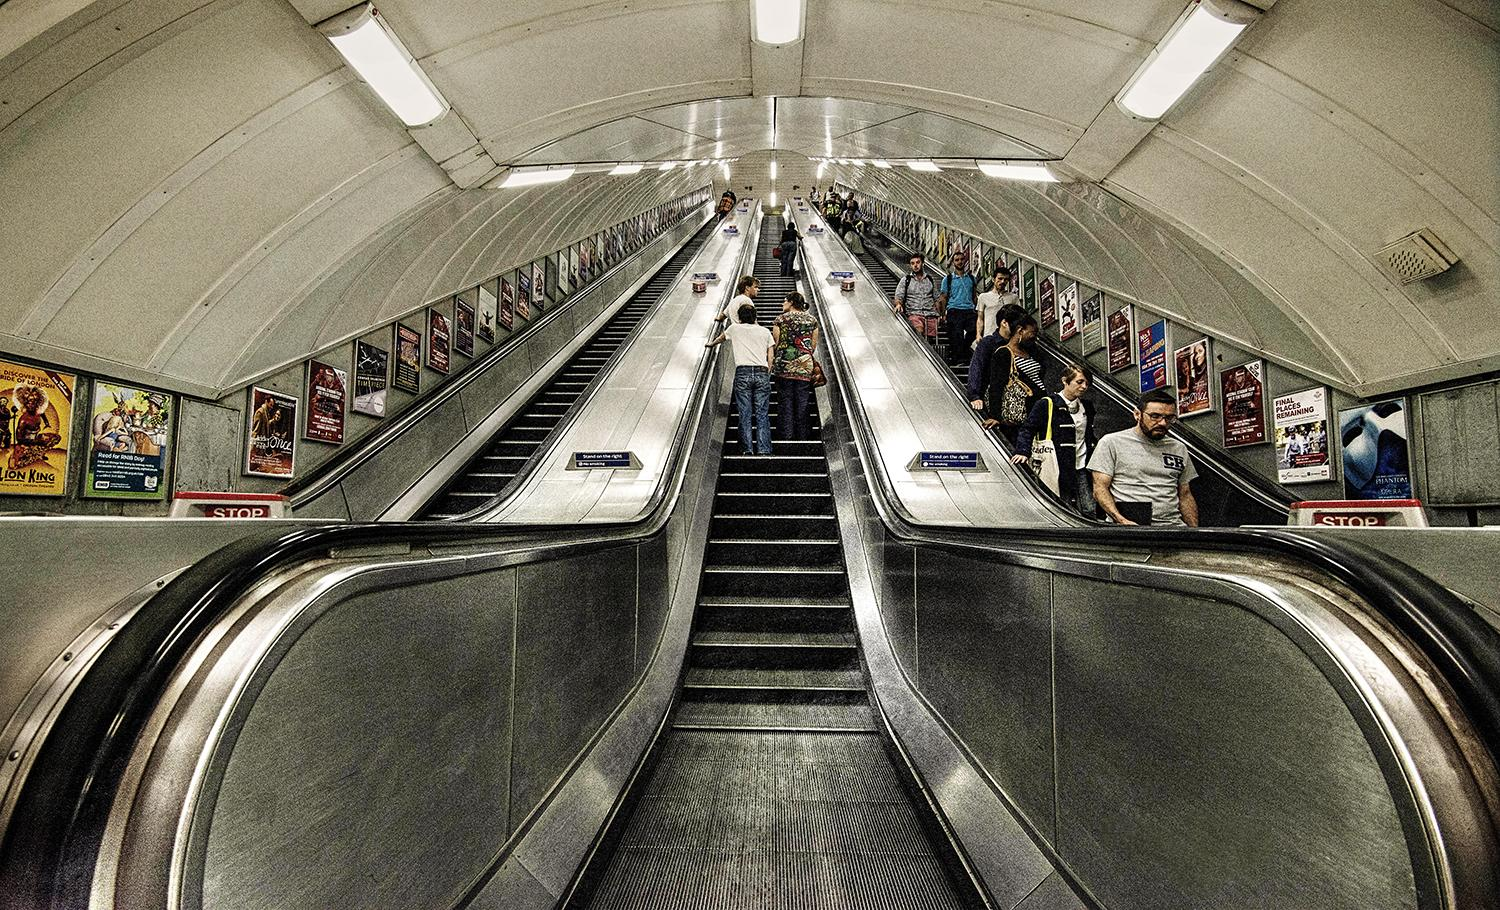 Escalators in London, Underground